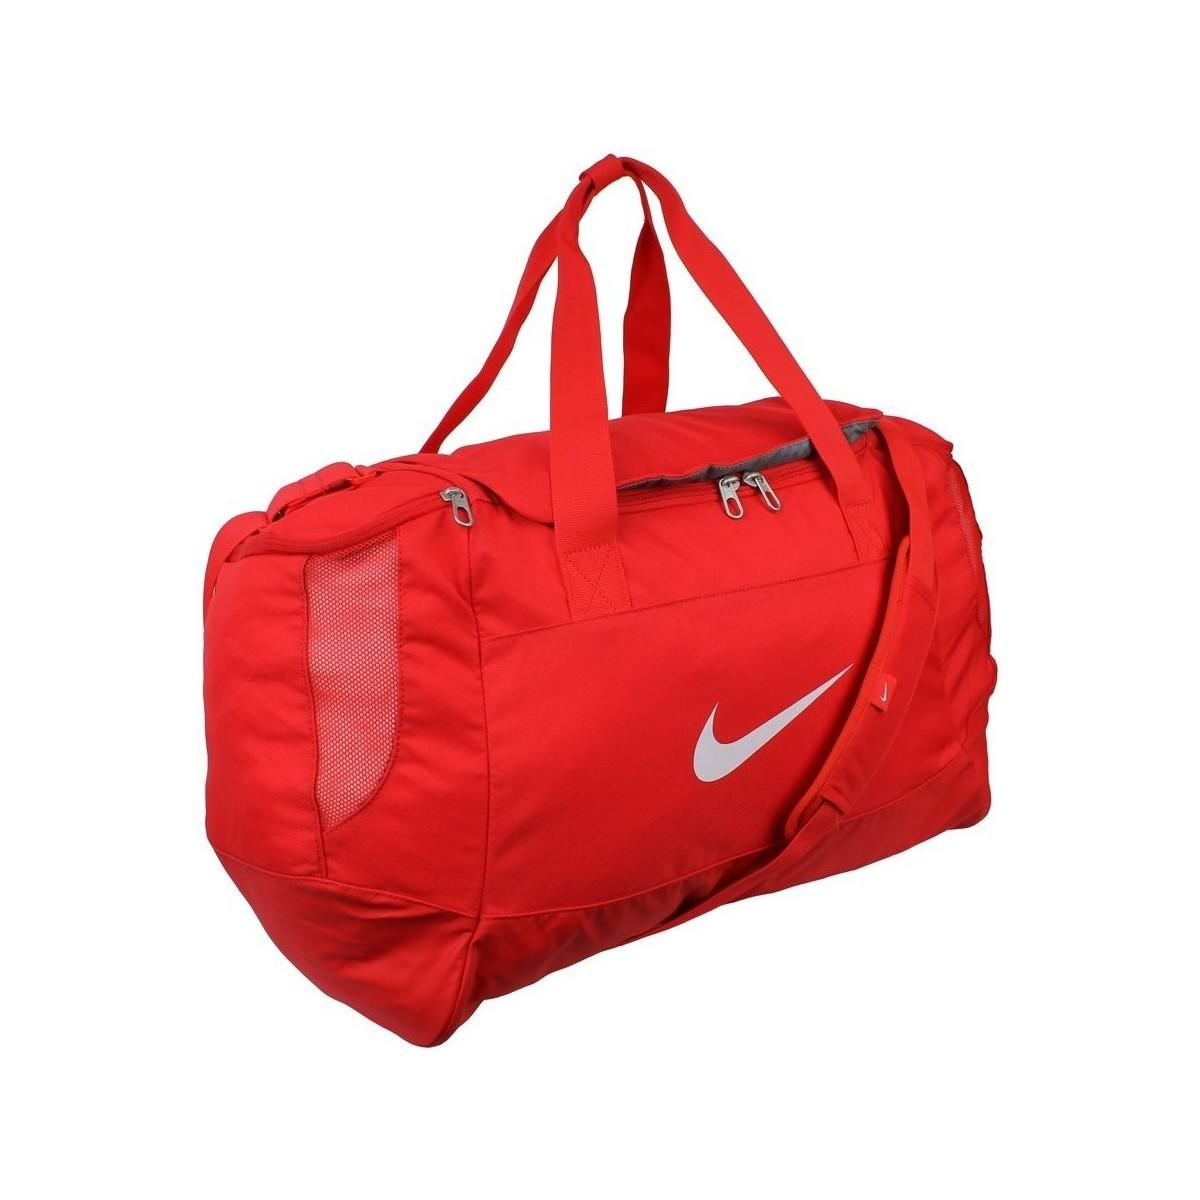 eb0eb2168133 Nike Club Team Duffel M Men s Sports Bag In Red in Red for Men - Lyst